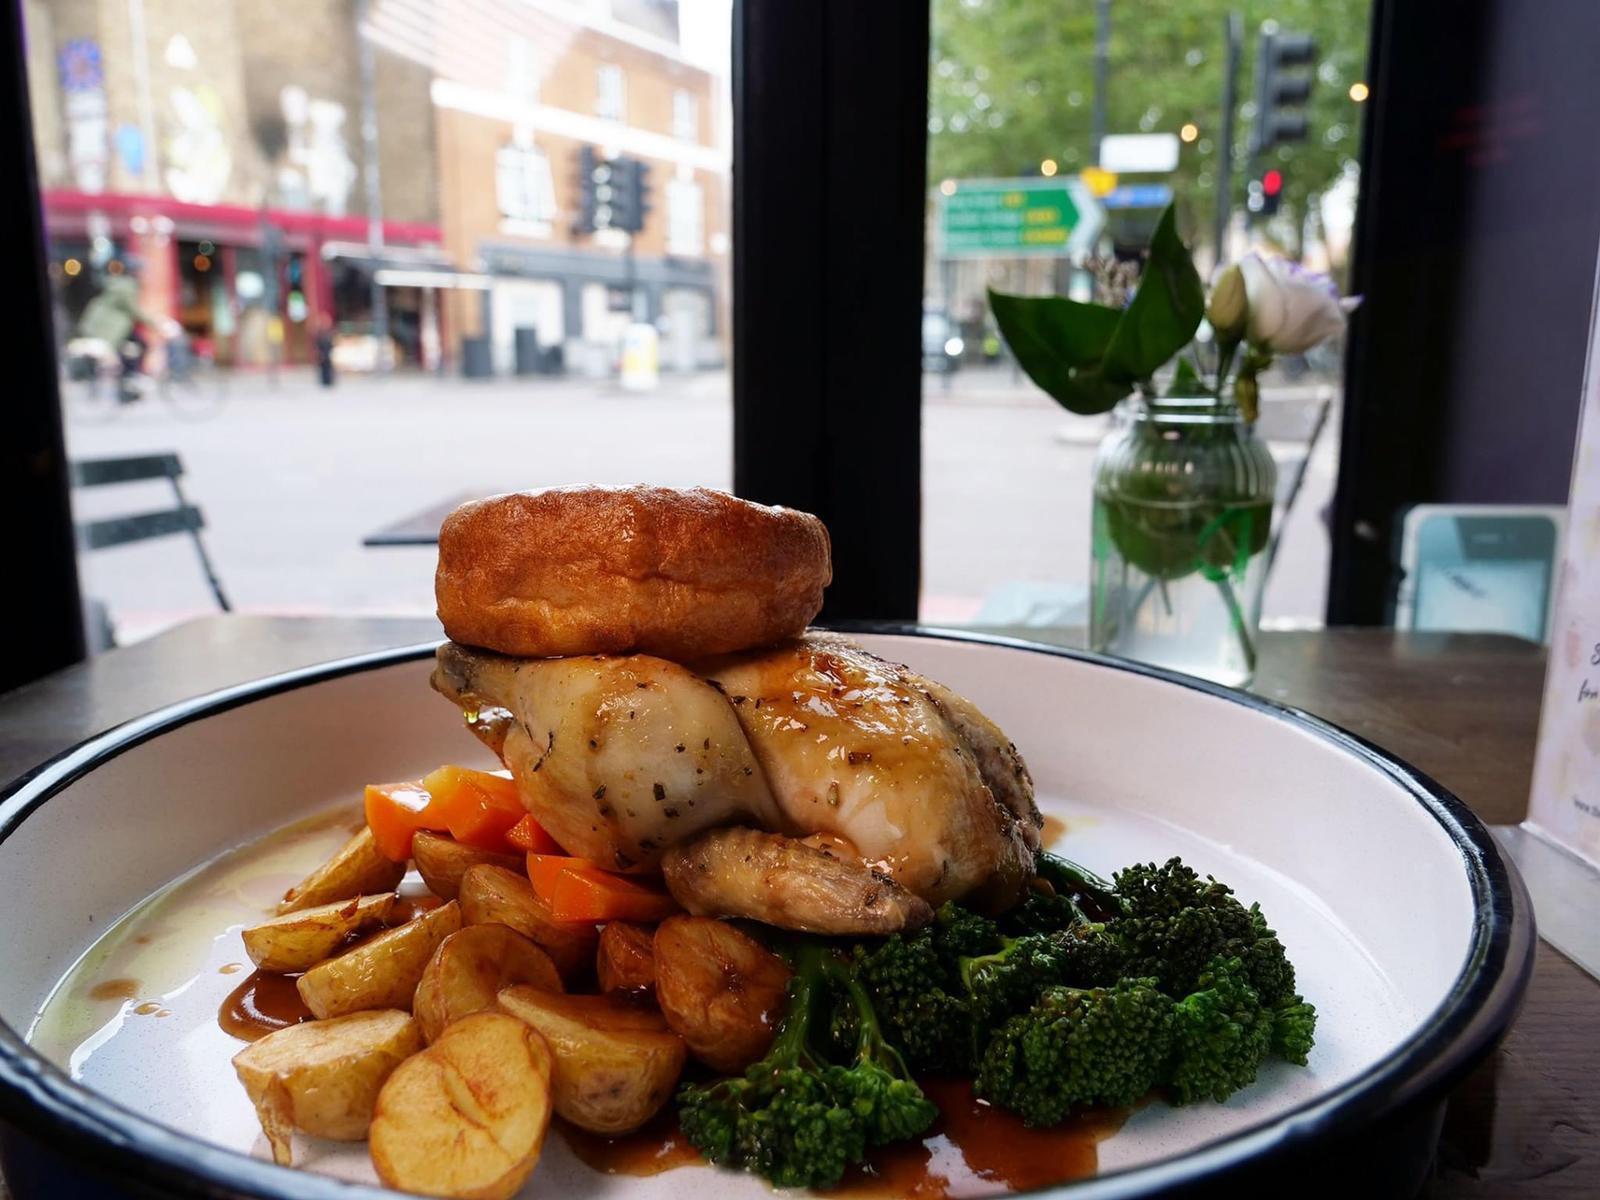 Sunday Roast at Shoreditch bar